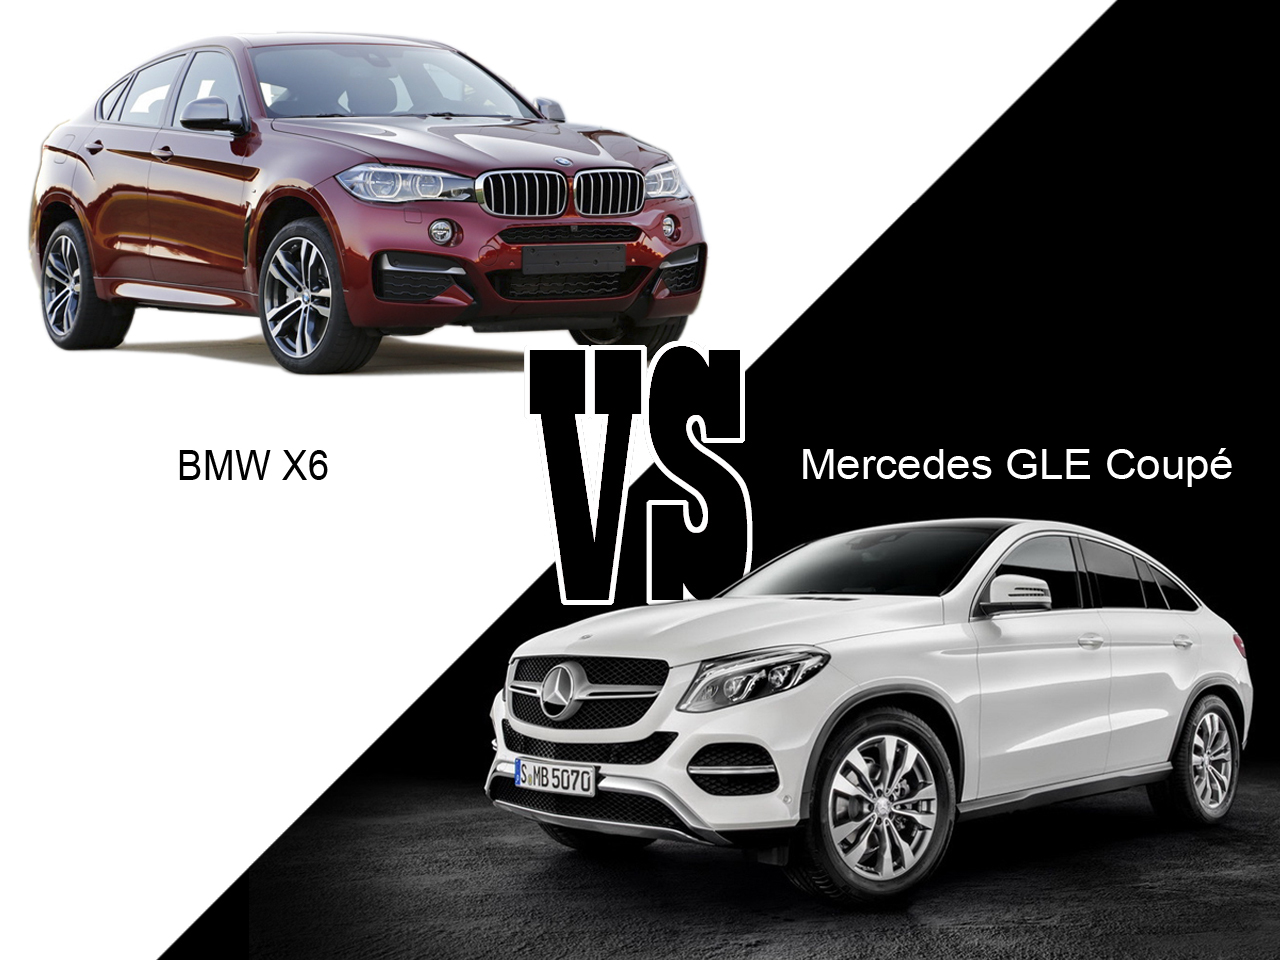 mercedes gle coup vs bmw x6 le match des coup s suv l 39 argus. Black Bedroom Furniture Sets. Home Design Ideas